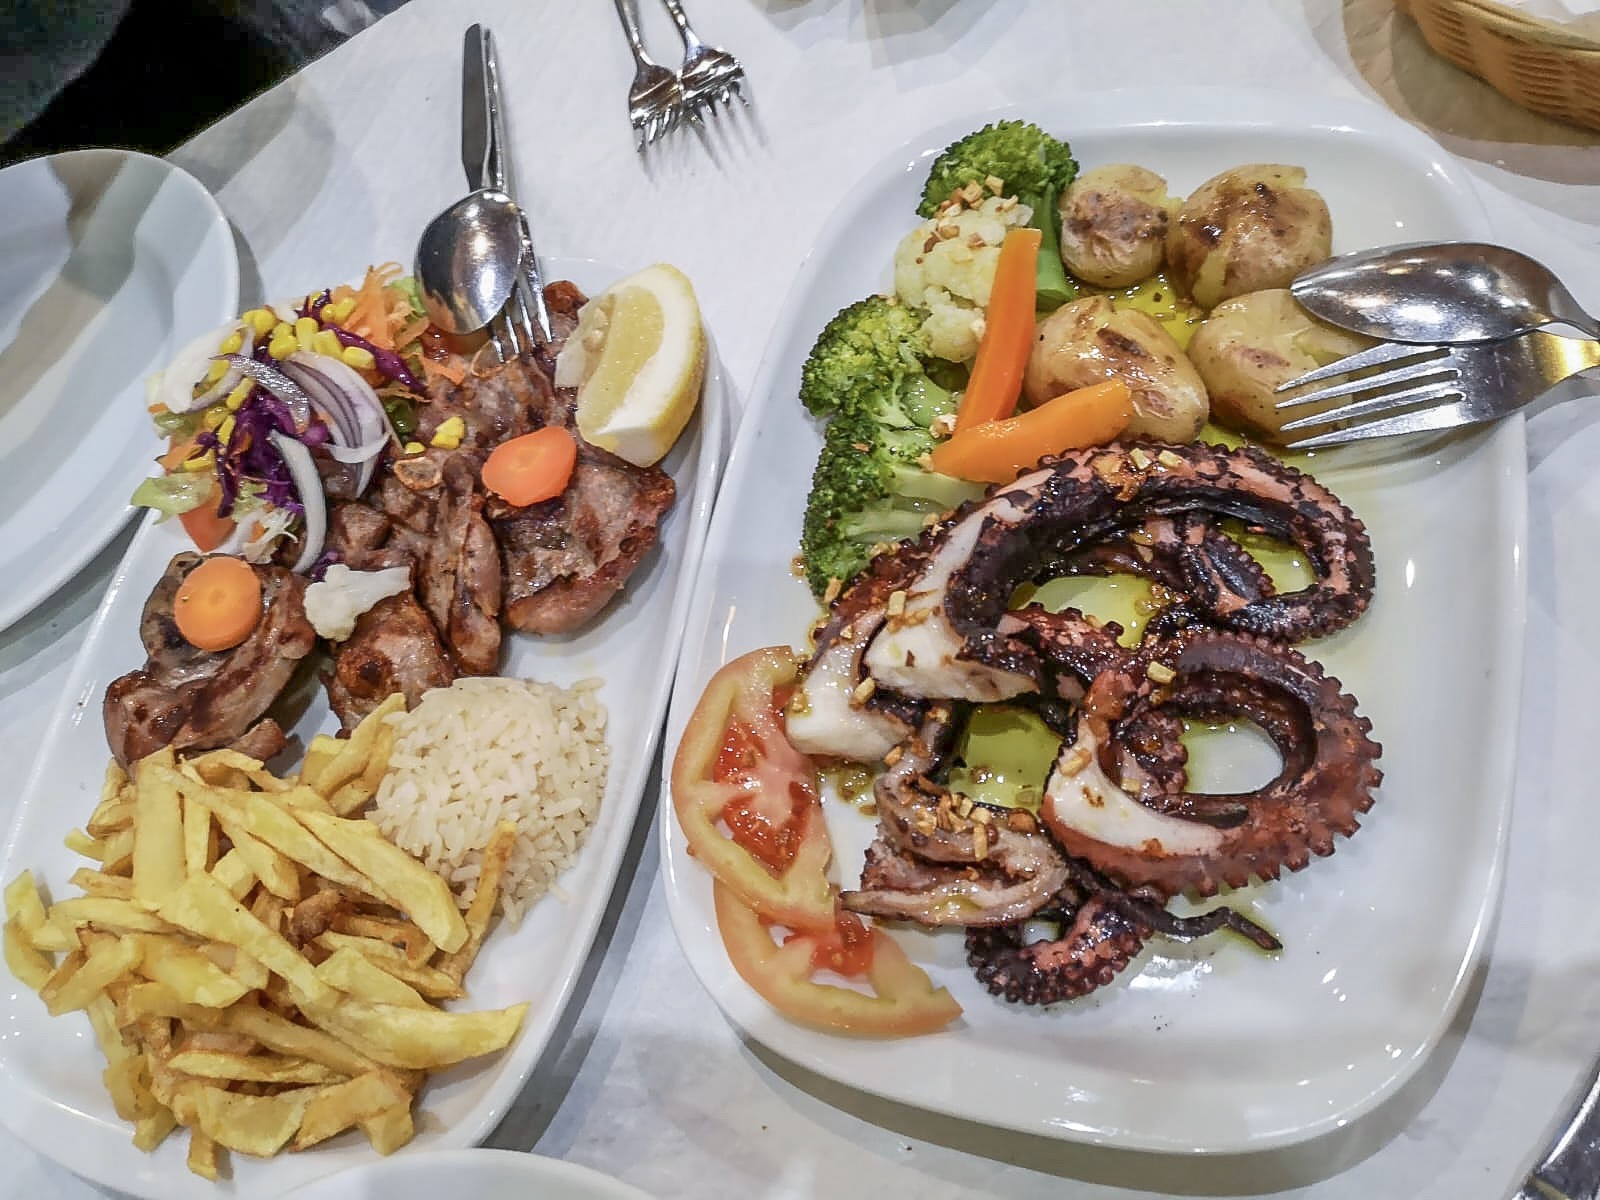 If you like octopus, here is the place to eat it. It blew our minds.